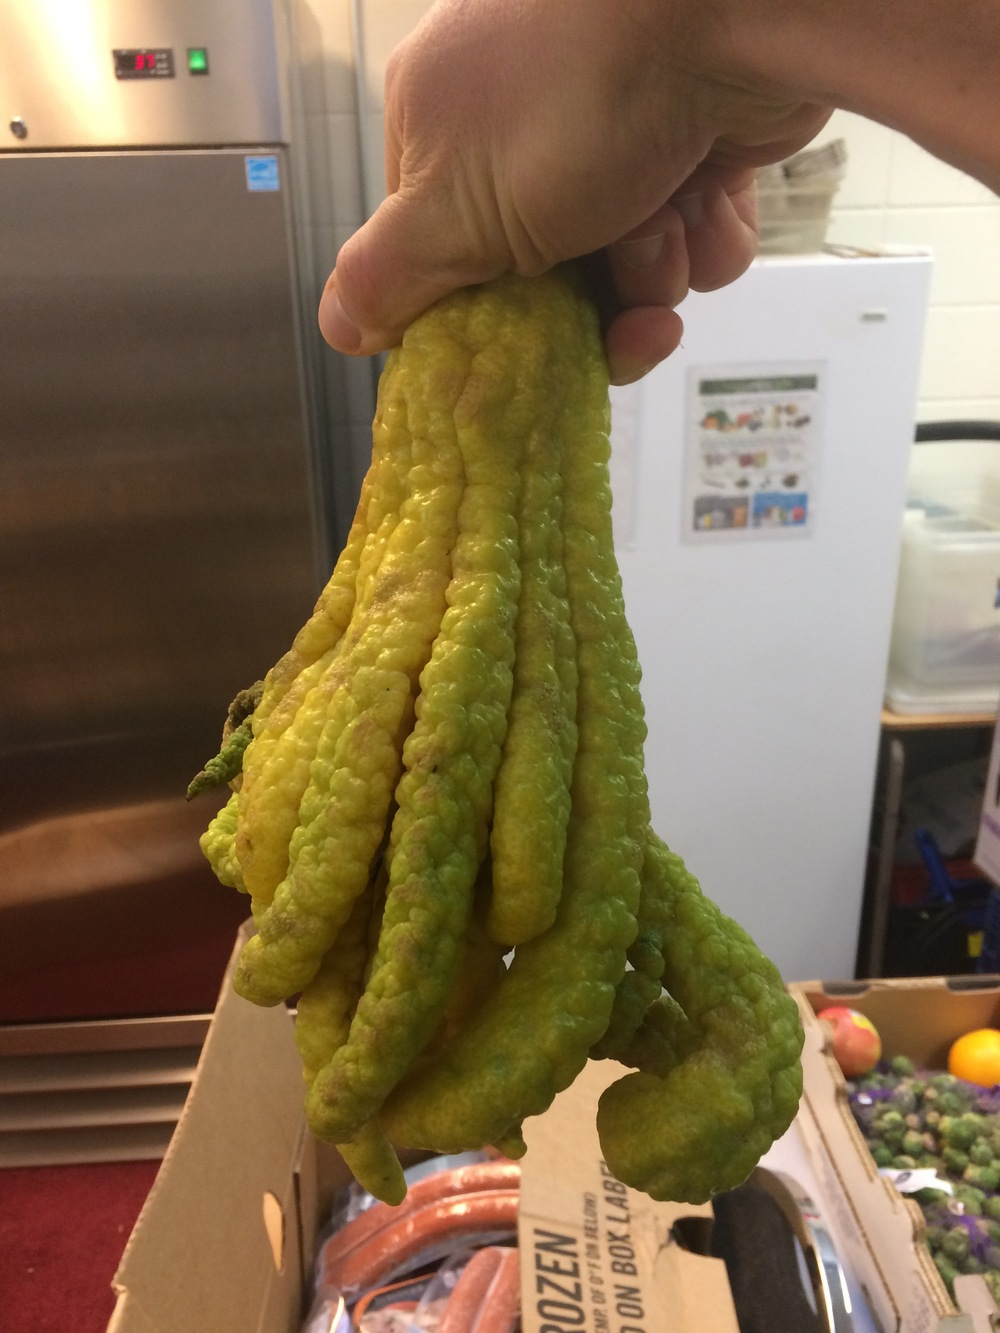 This fruit is real.  And what happens when an octopus gets drunk and goes after a lemon.